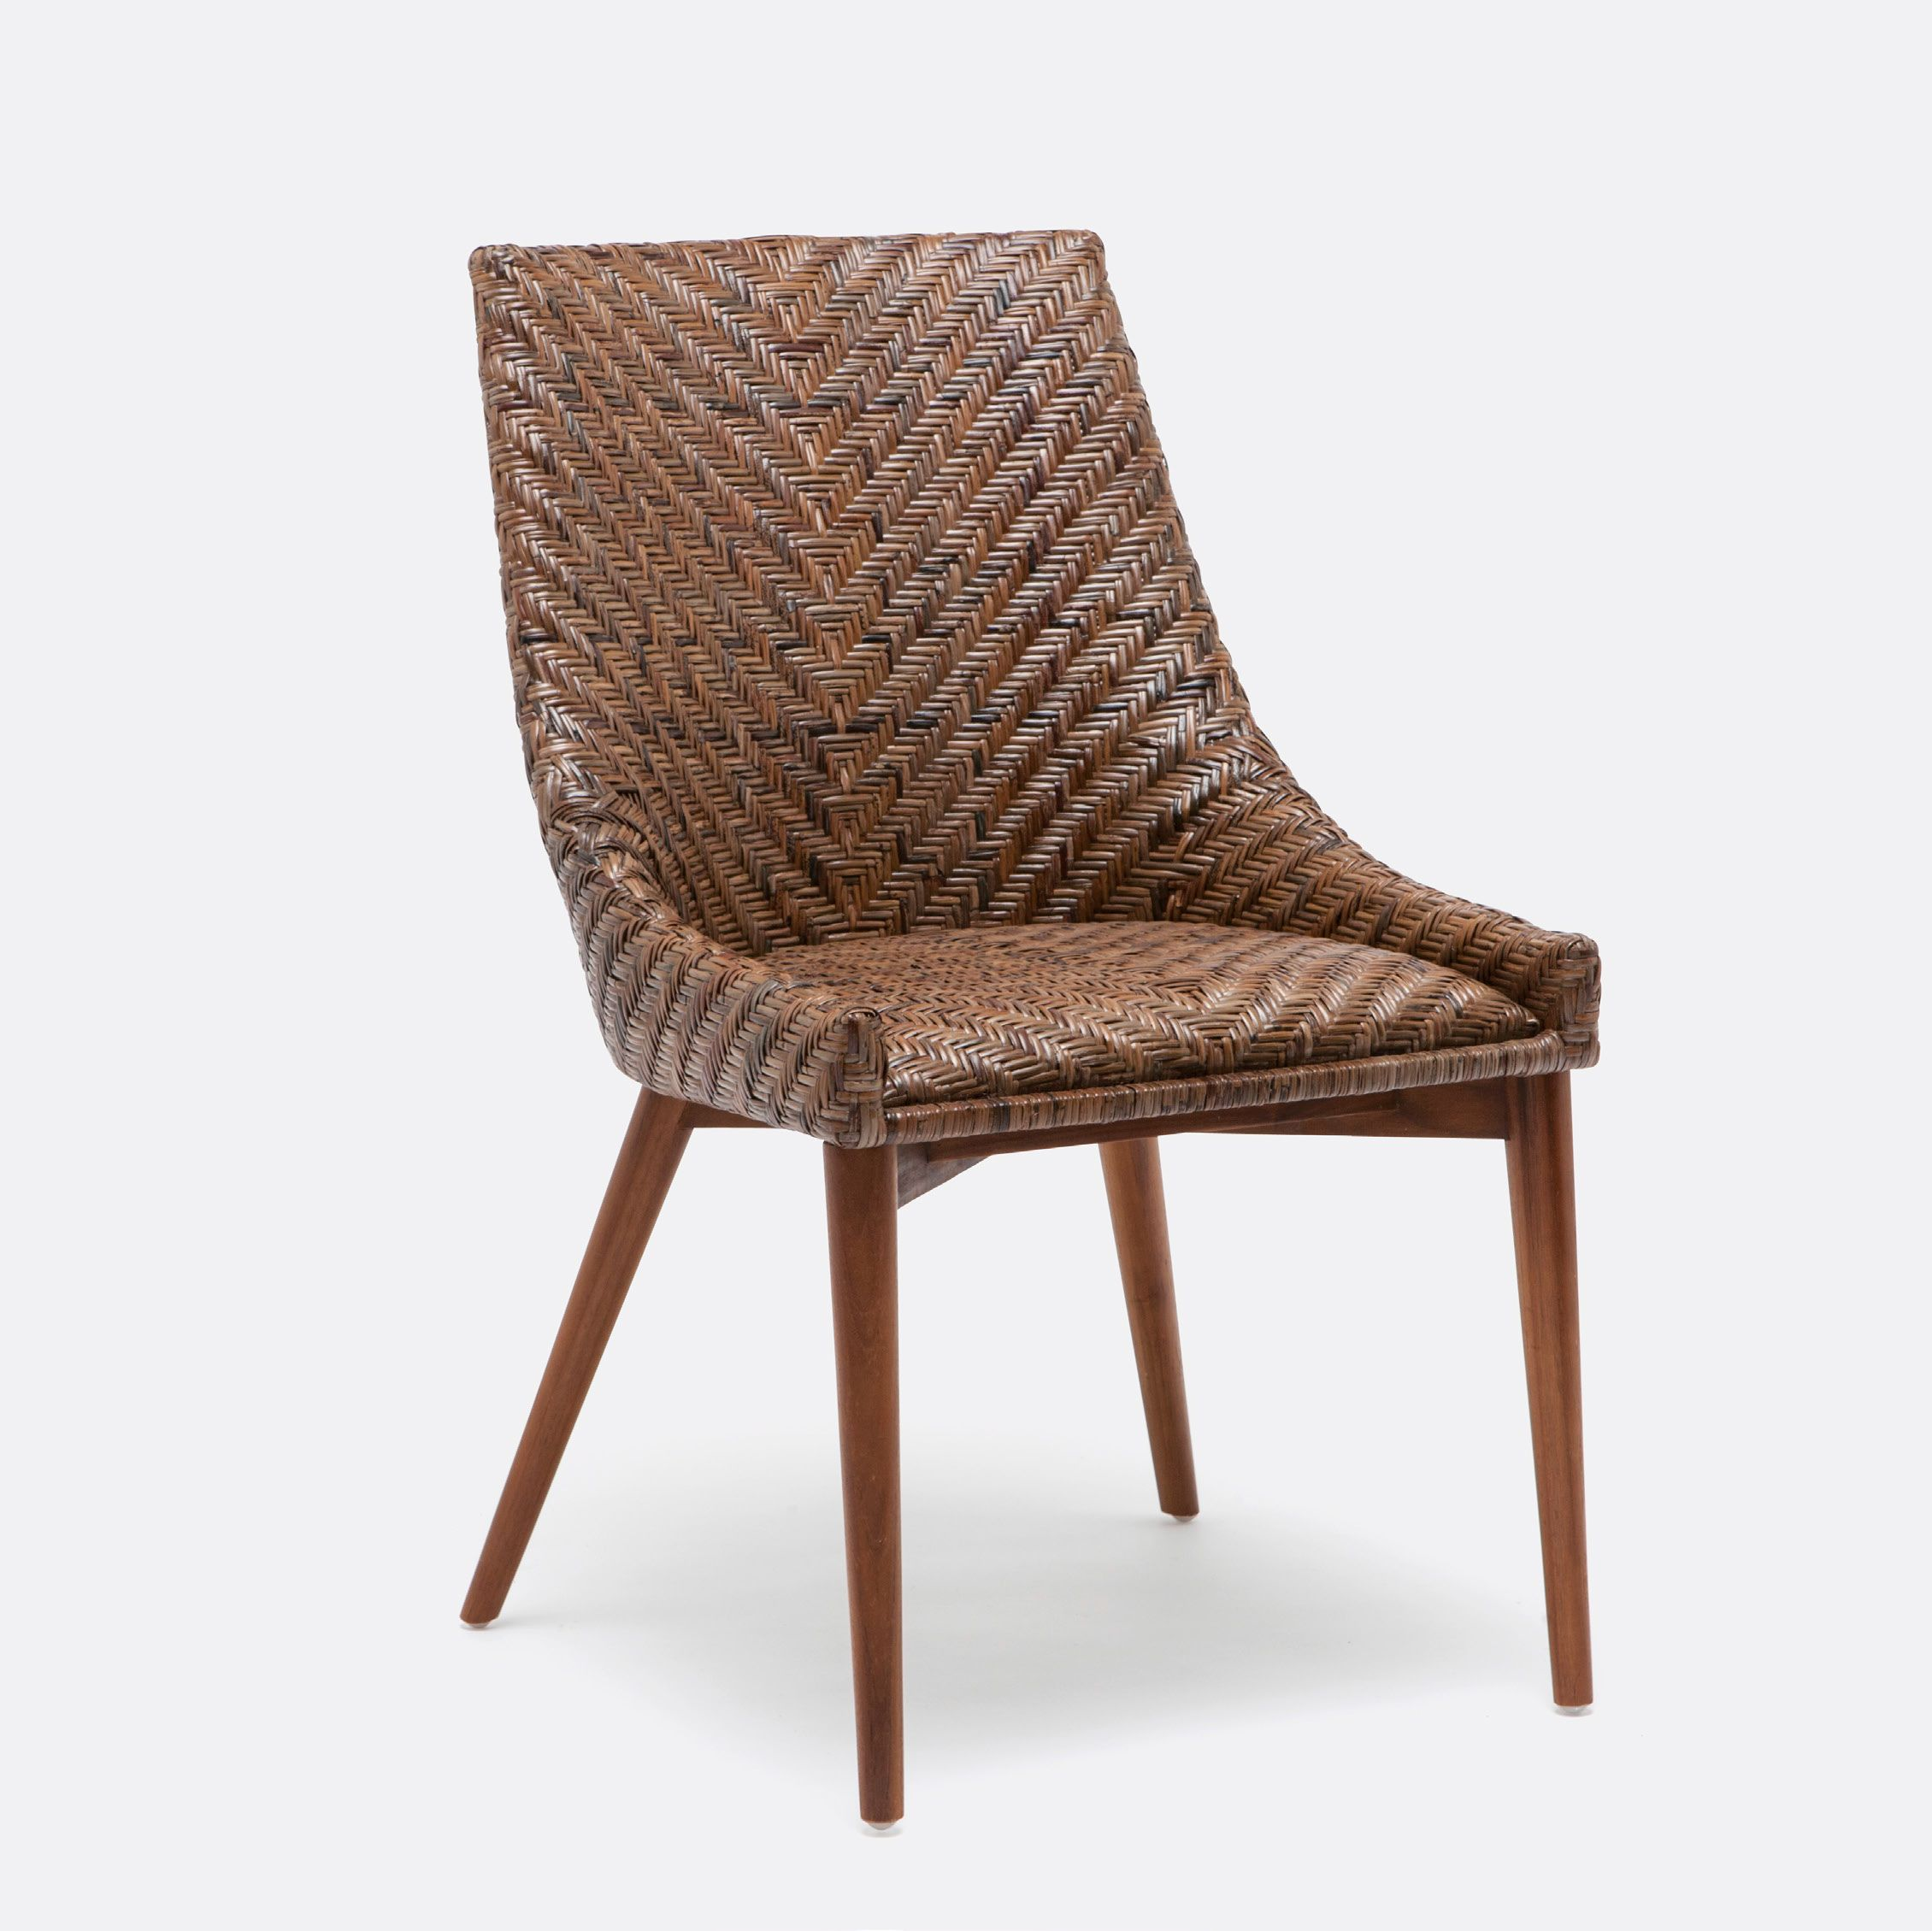 Woven Dining Chairs: Woven Rattan Dining Chair